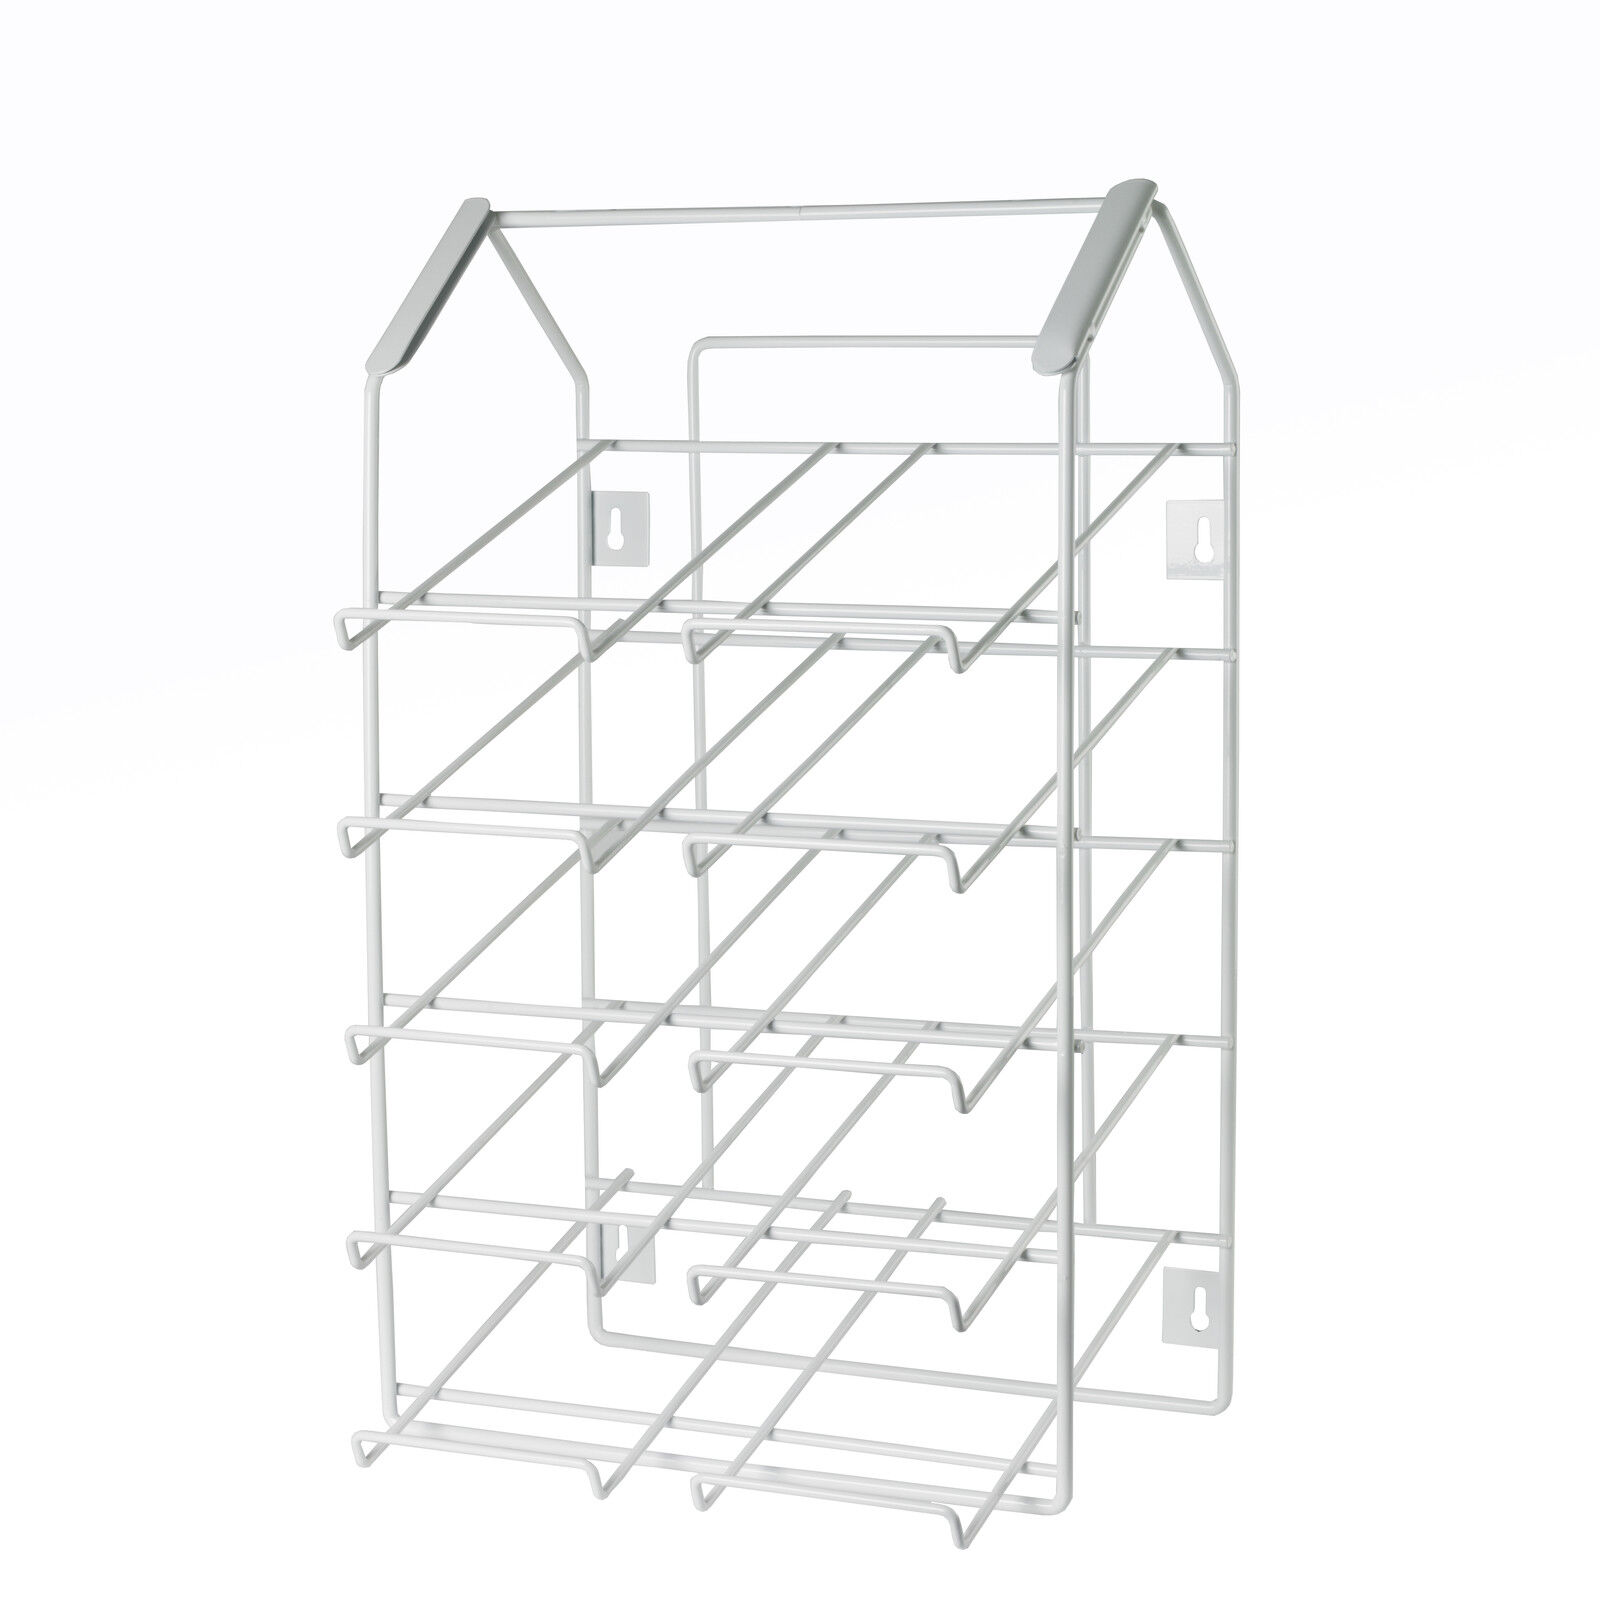 A00900 DISPLAY STAND FOR ASSORTED BOX RANGE HOLDS 10 BOX'S